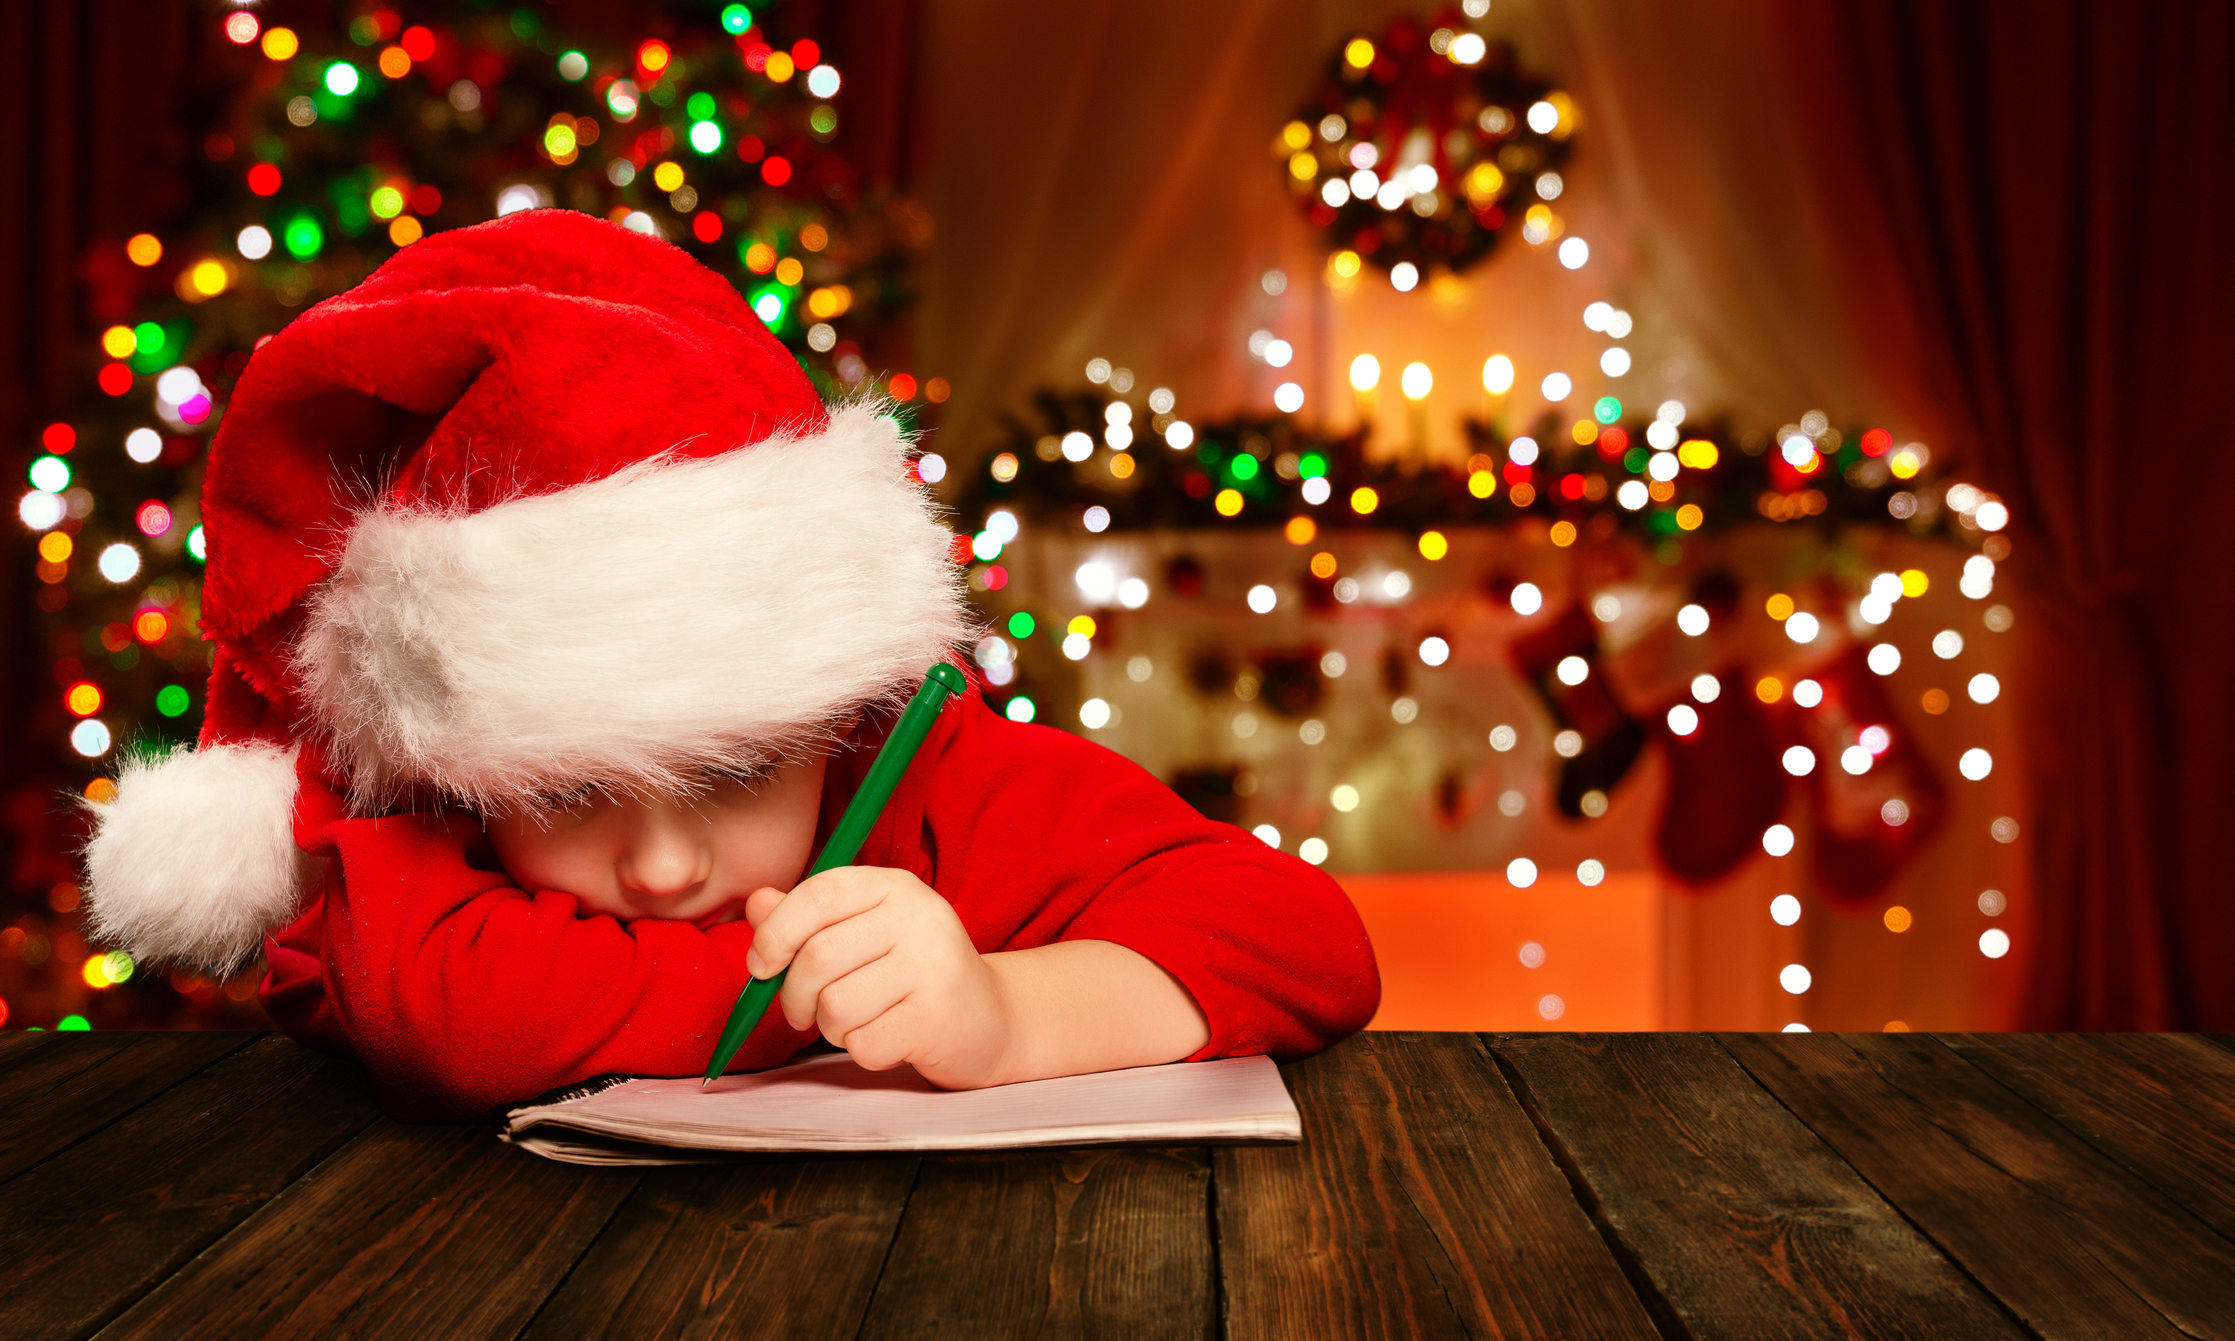 Christmas Wish List Template for Kids | LoveToKnow